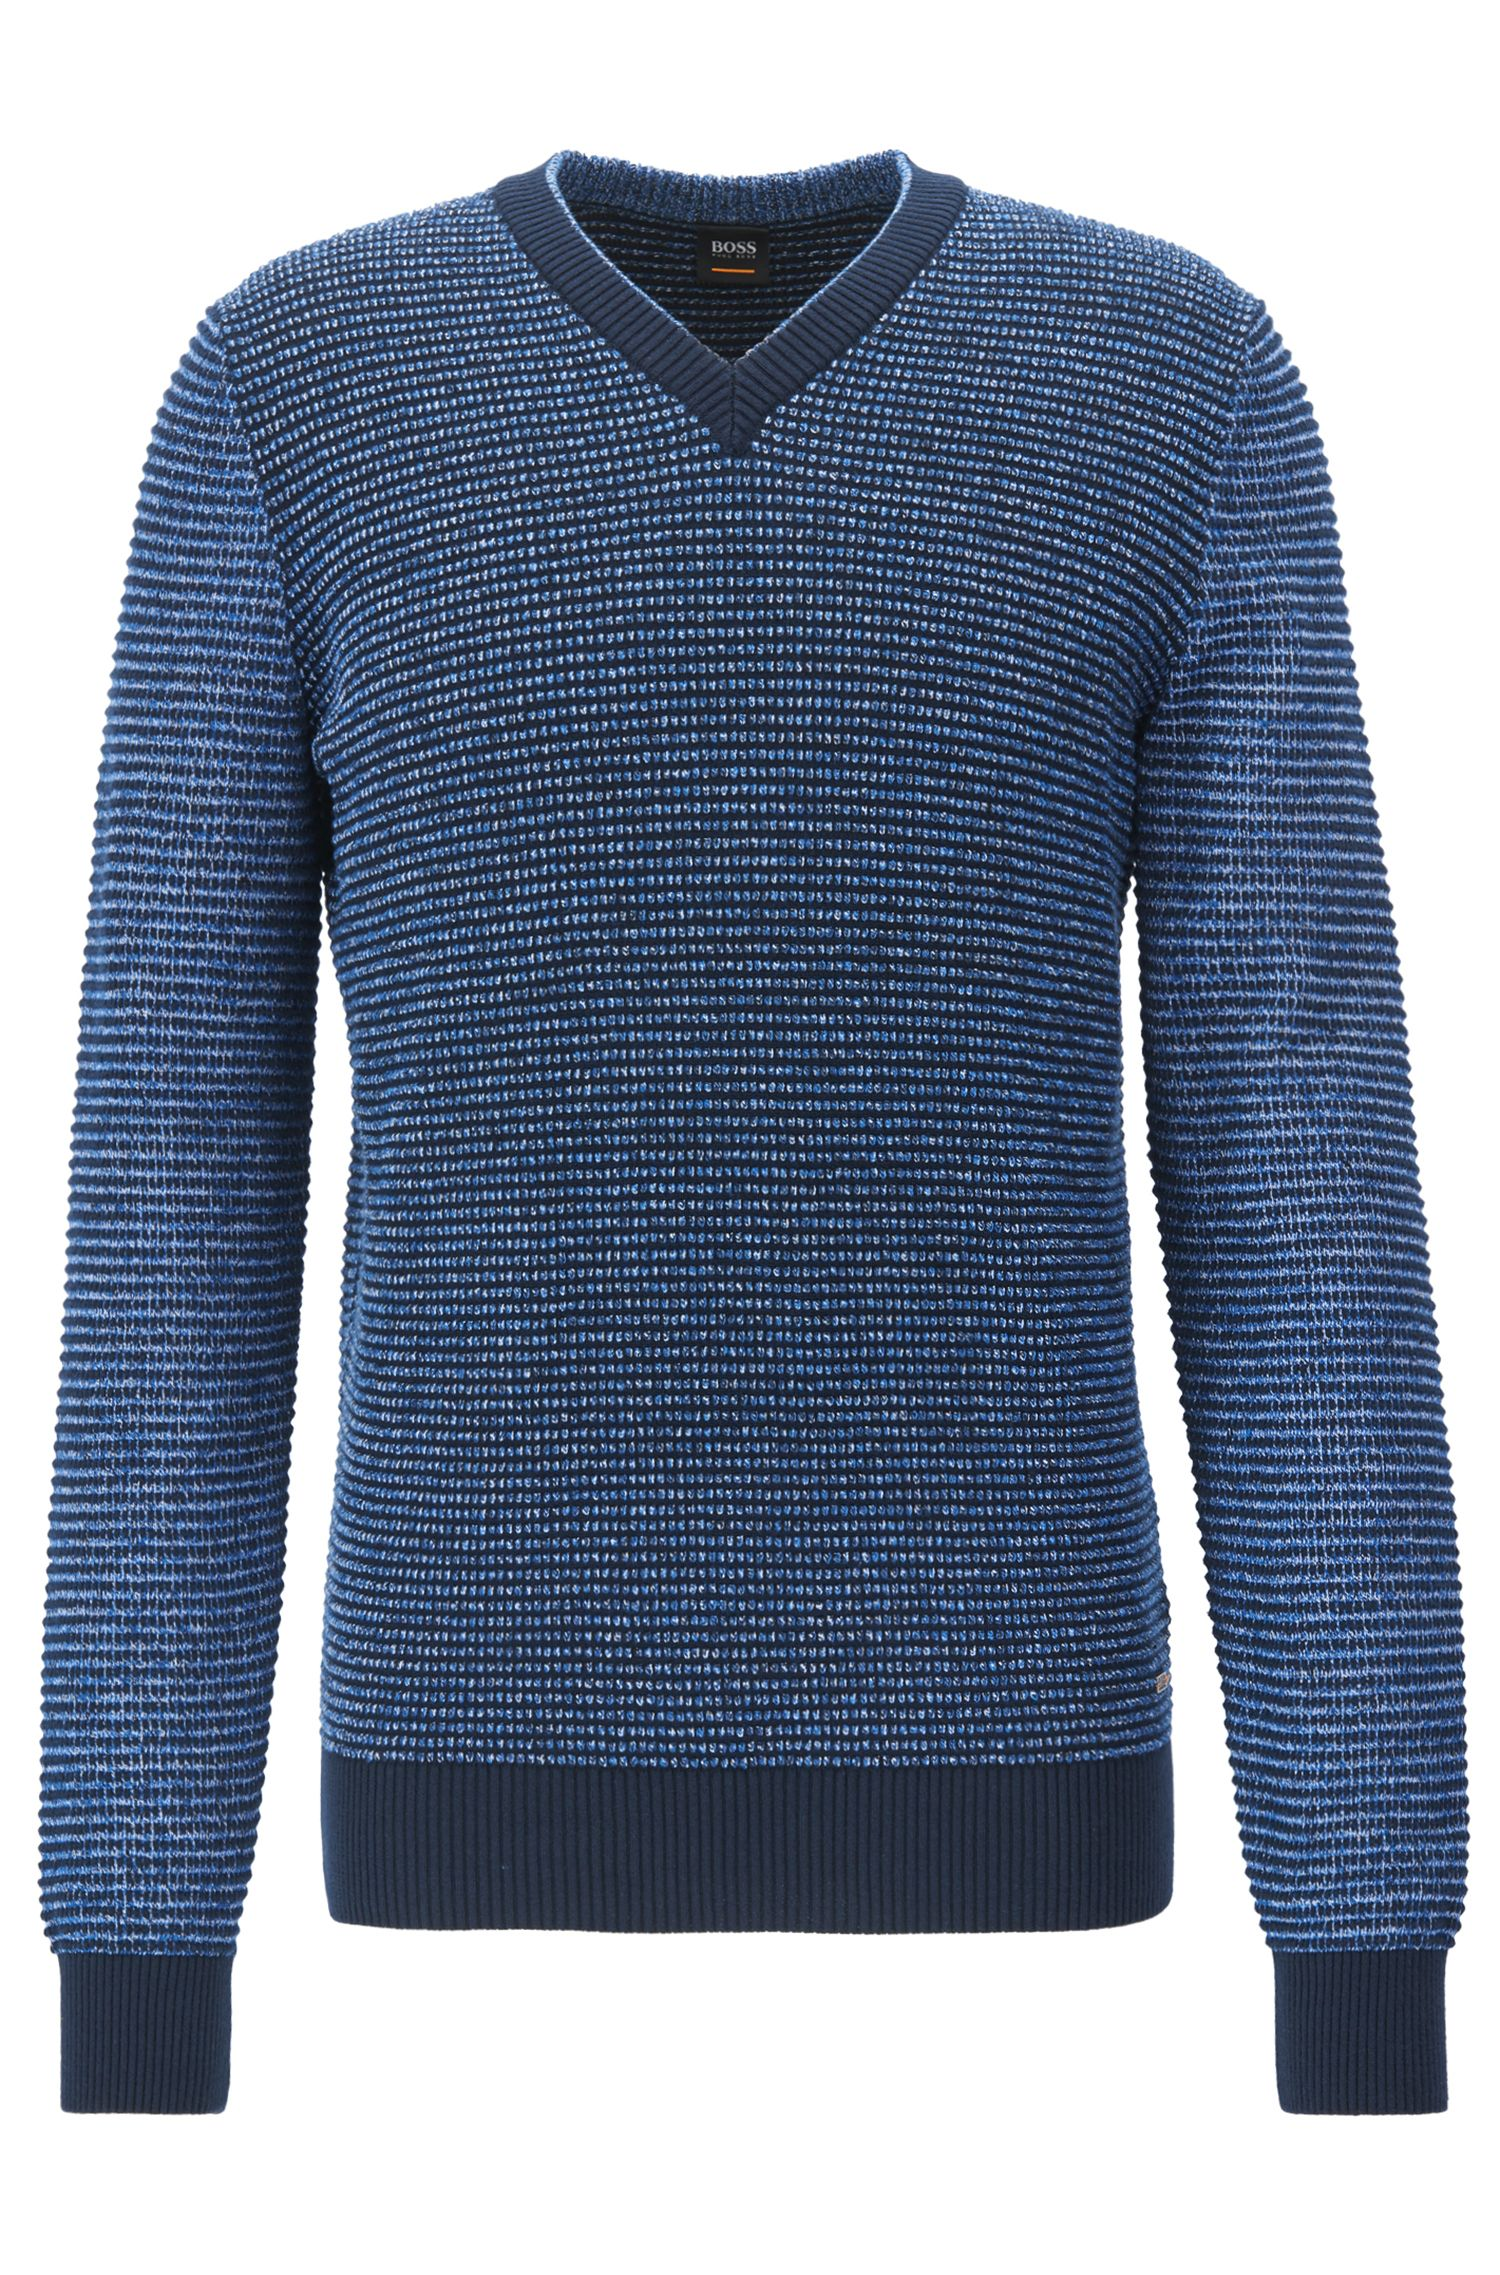 V-neck sweater in a structured cotton blend